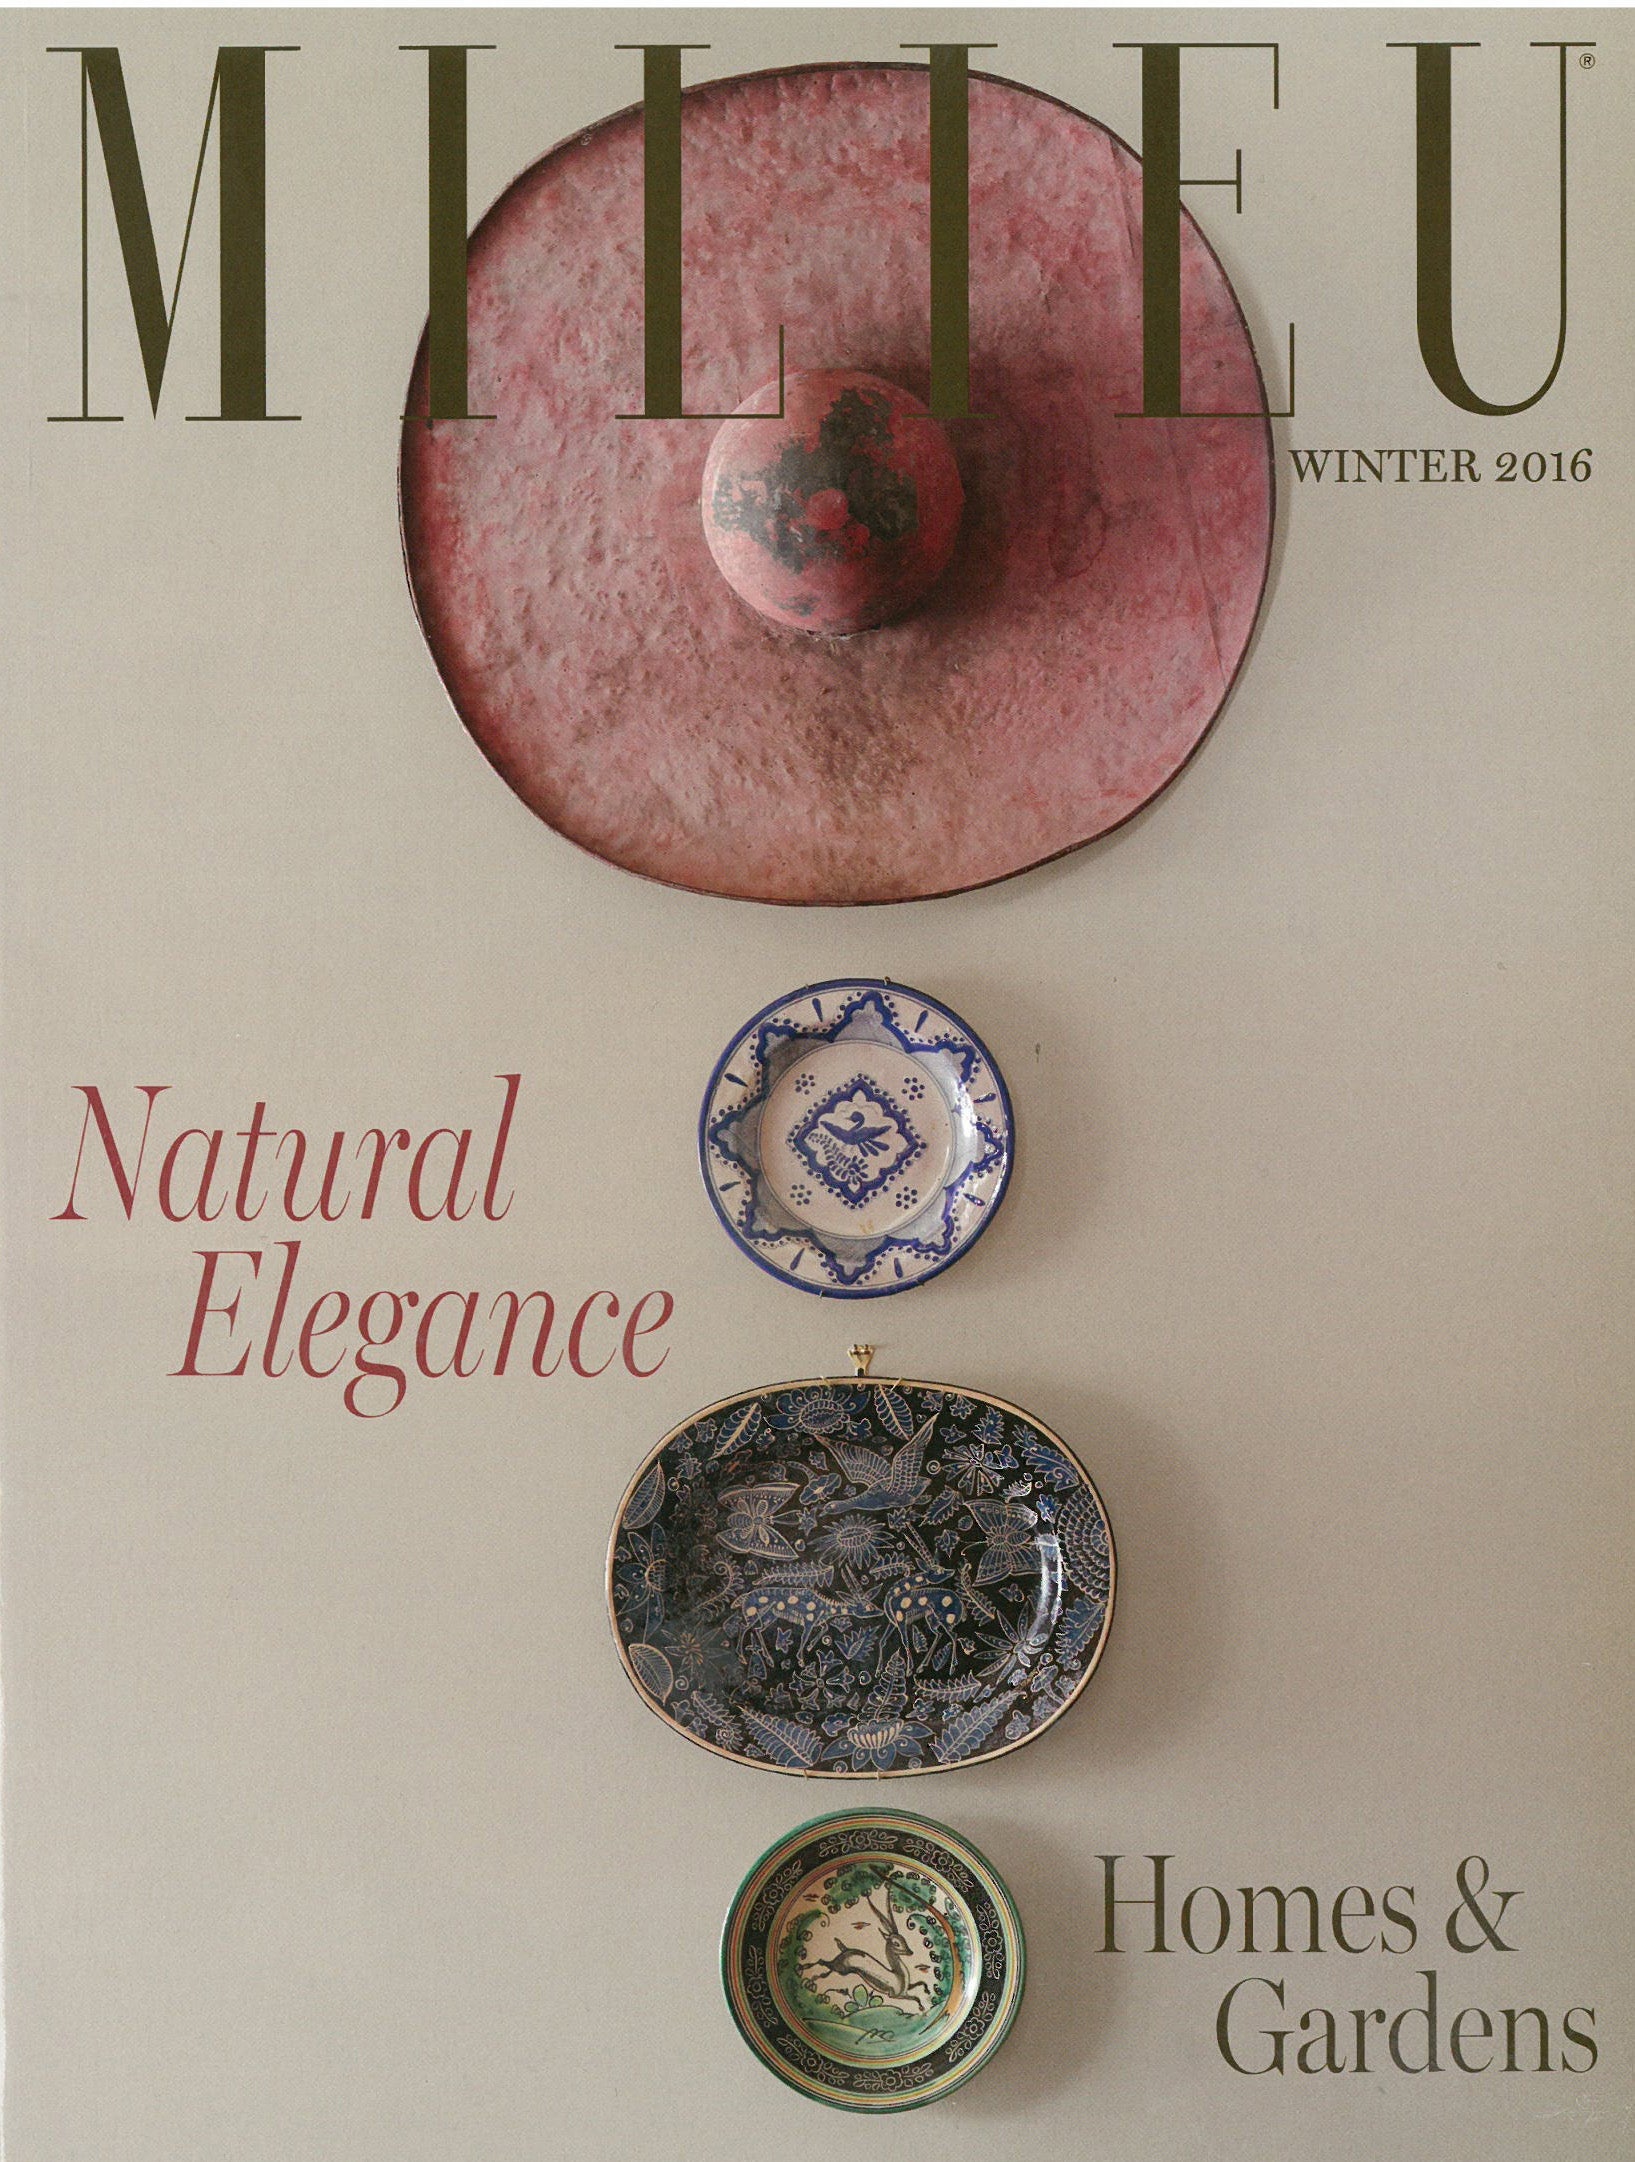 Milieu cover from Winter 2016 issue